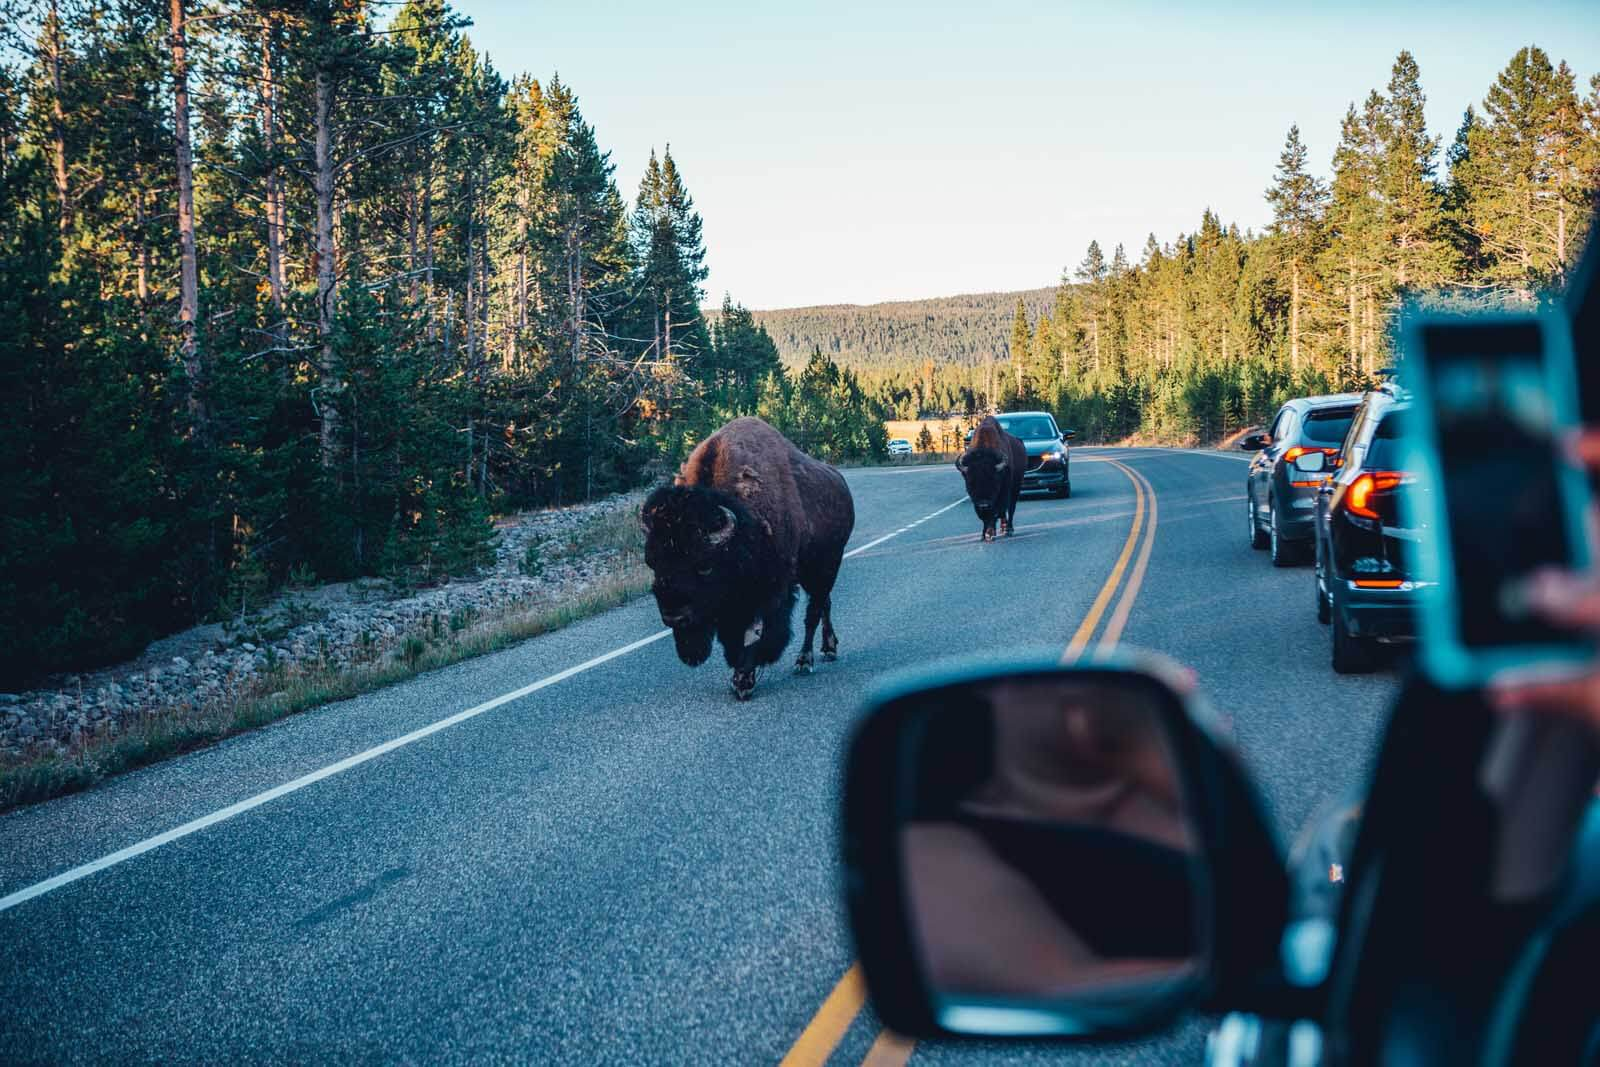 Bison walking right down the road in Yellowstone National PArk